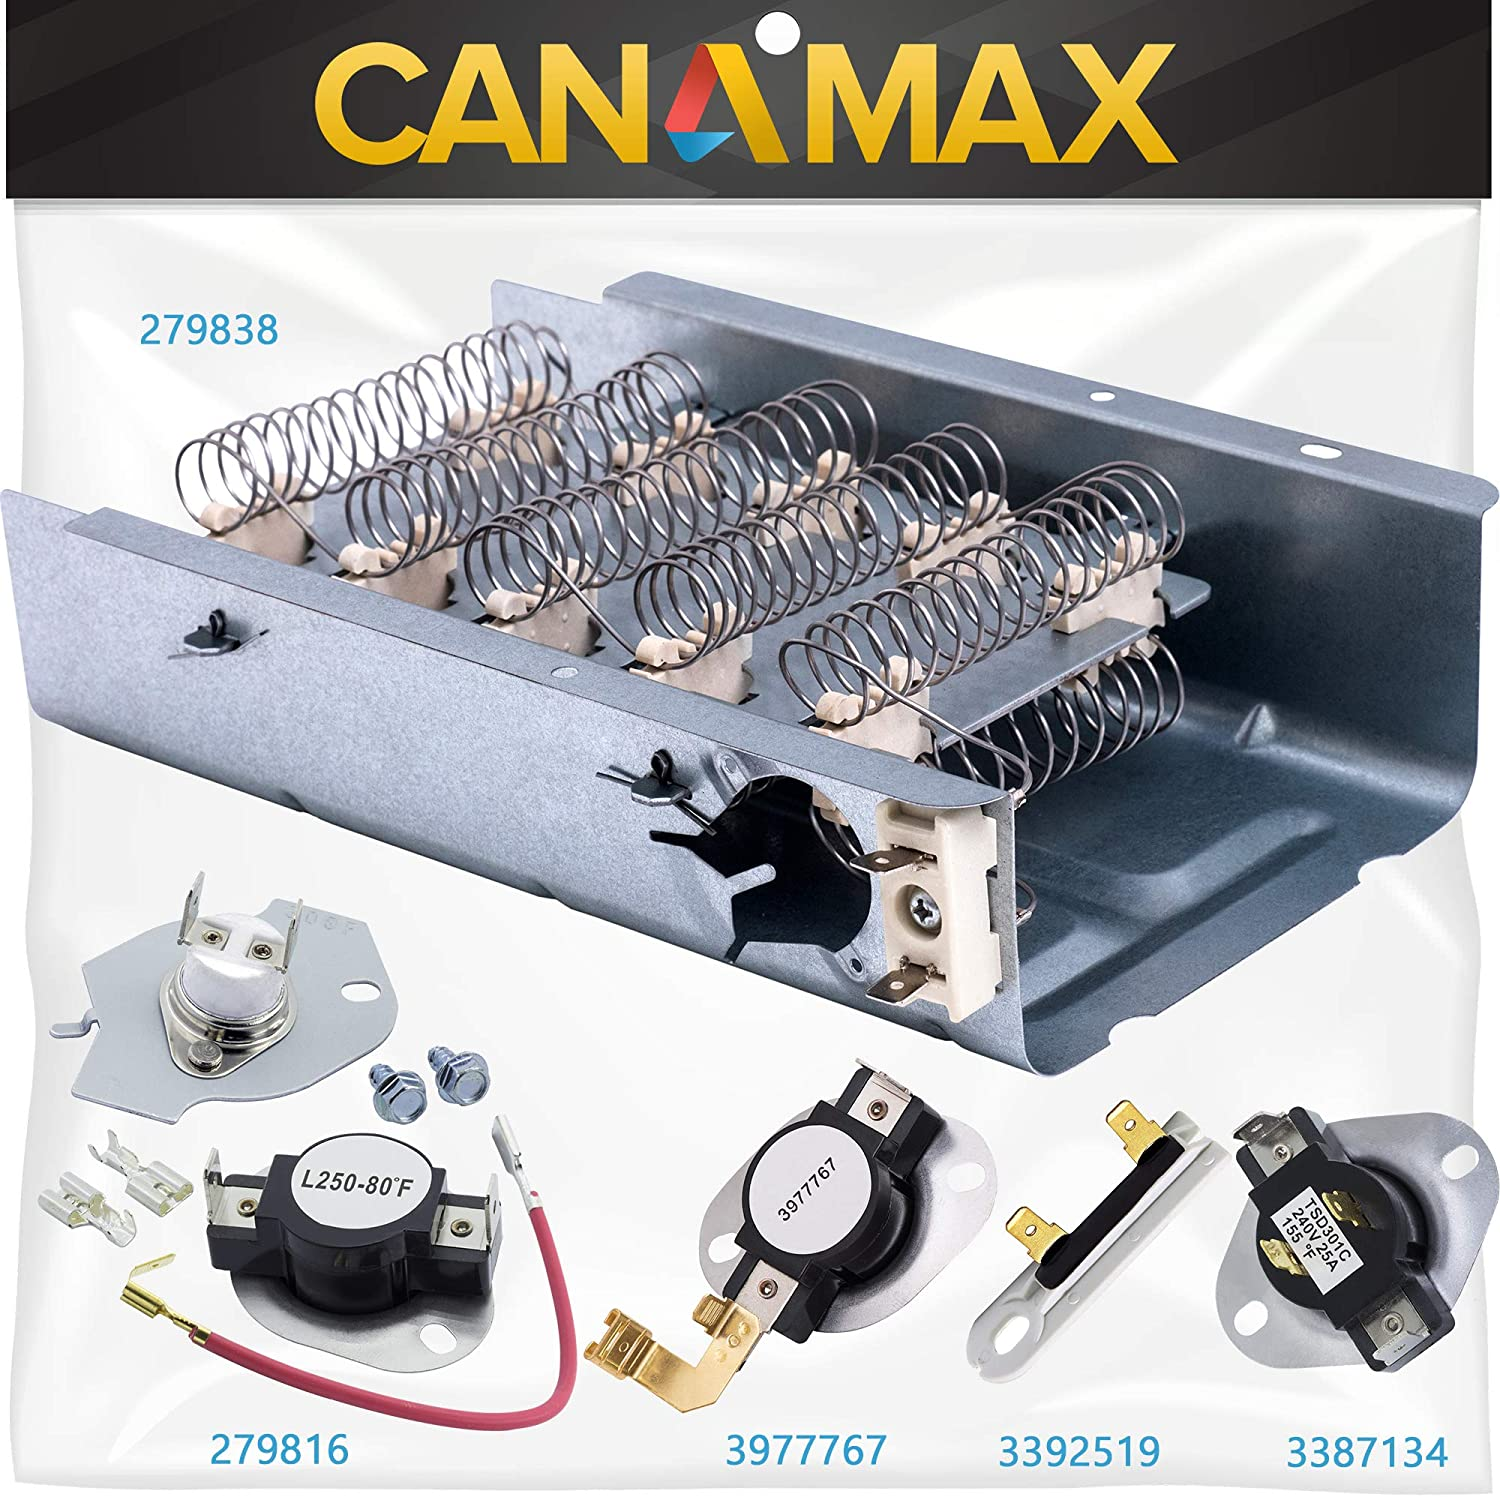 279838 279816 3387134 3977767 3392519 Dryer Heating Element with Thermal Cut-off Fuse COMPLETE Dryer Repair Kit Premium Replacement by Canamax - Compatible with Whirlpool Dryers